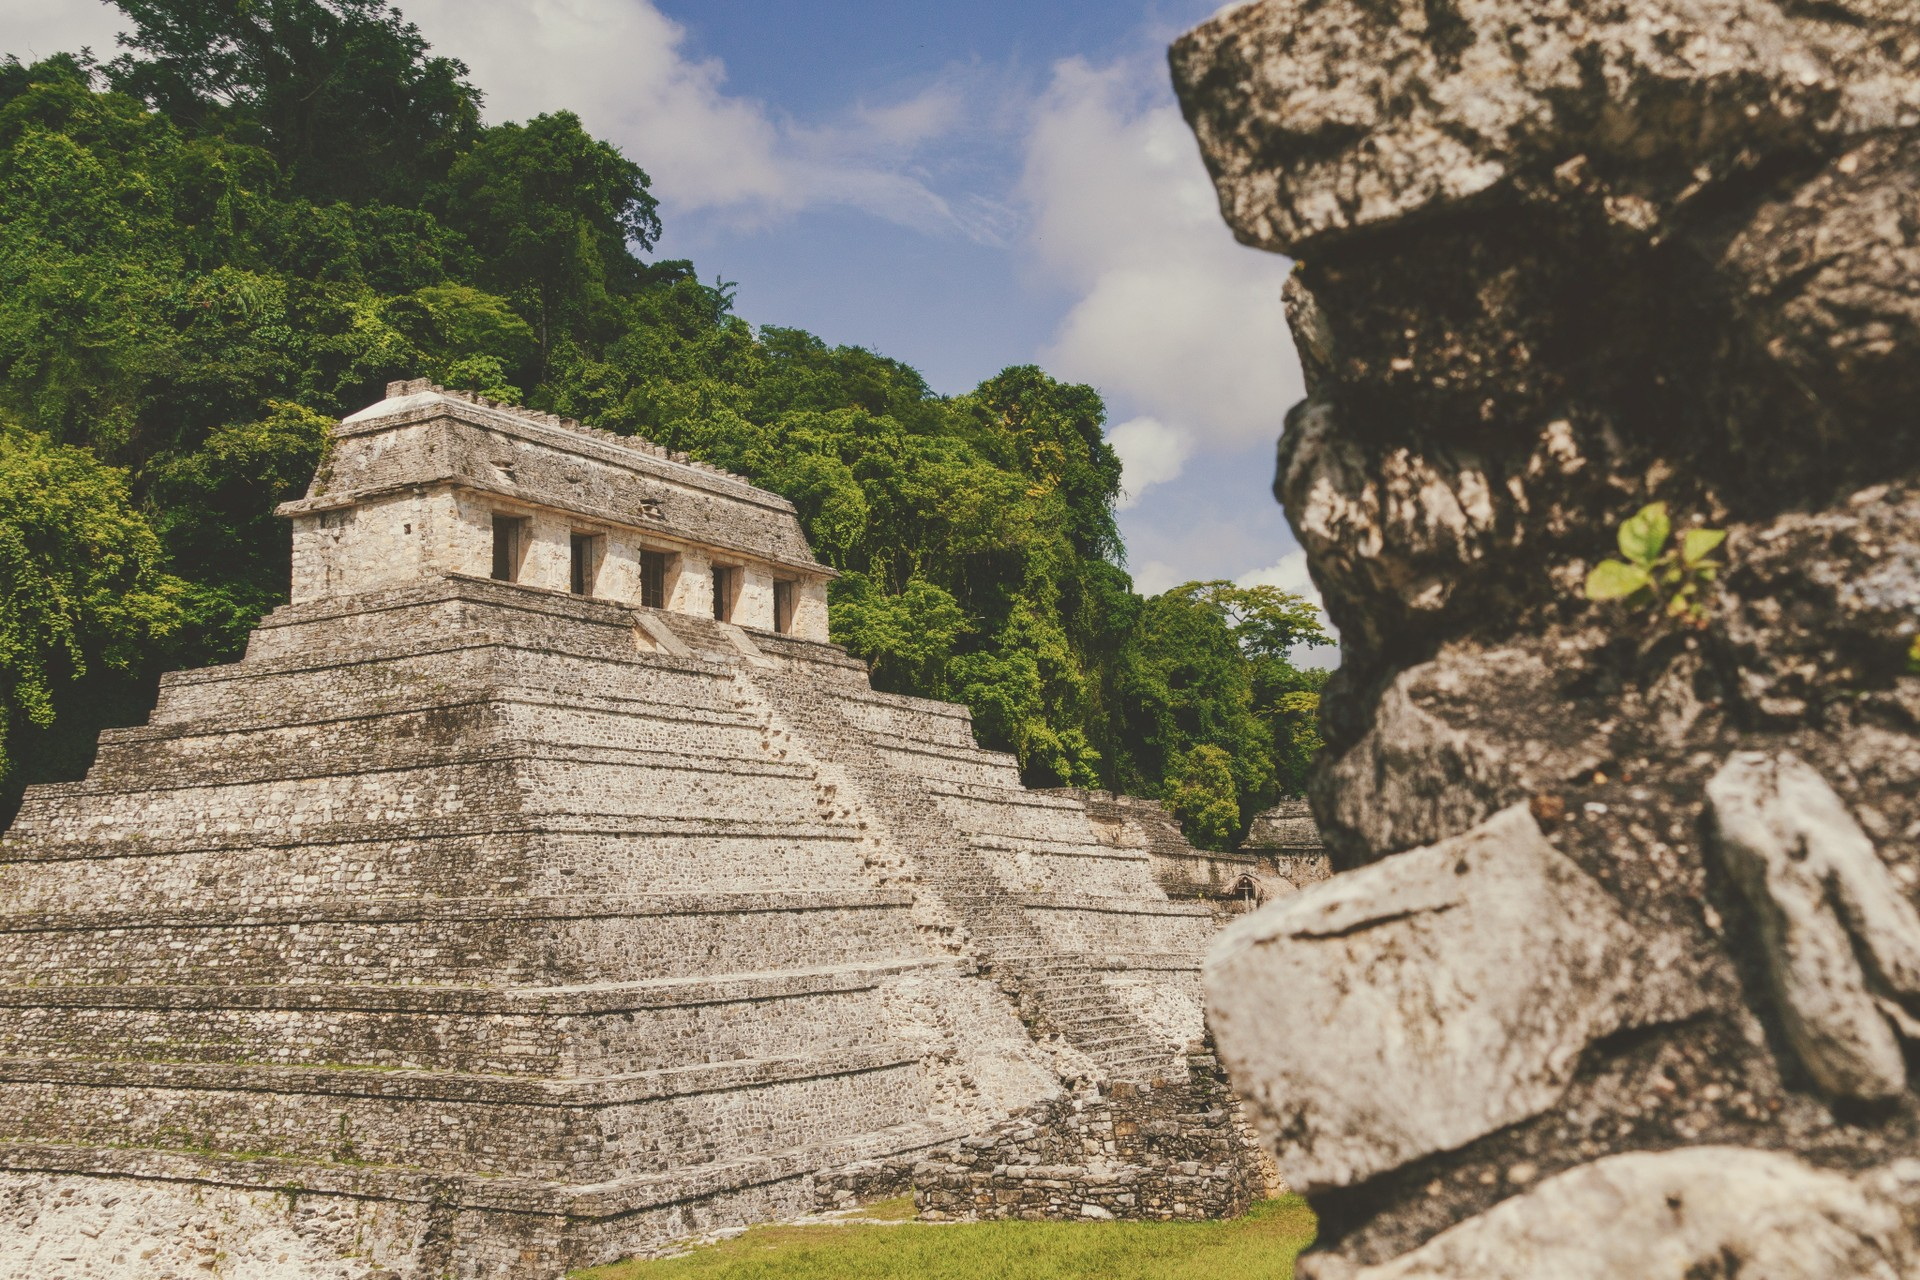 An ancient Maya temple at Mexico's Chichén Itzá archaeological site